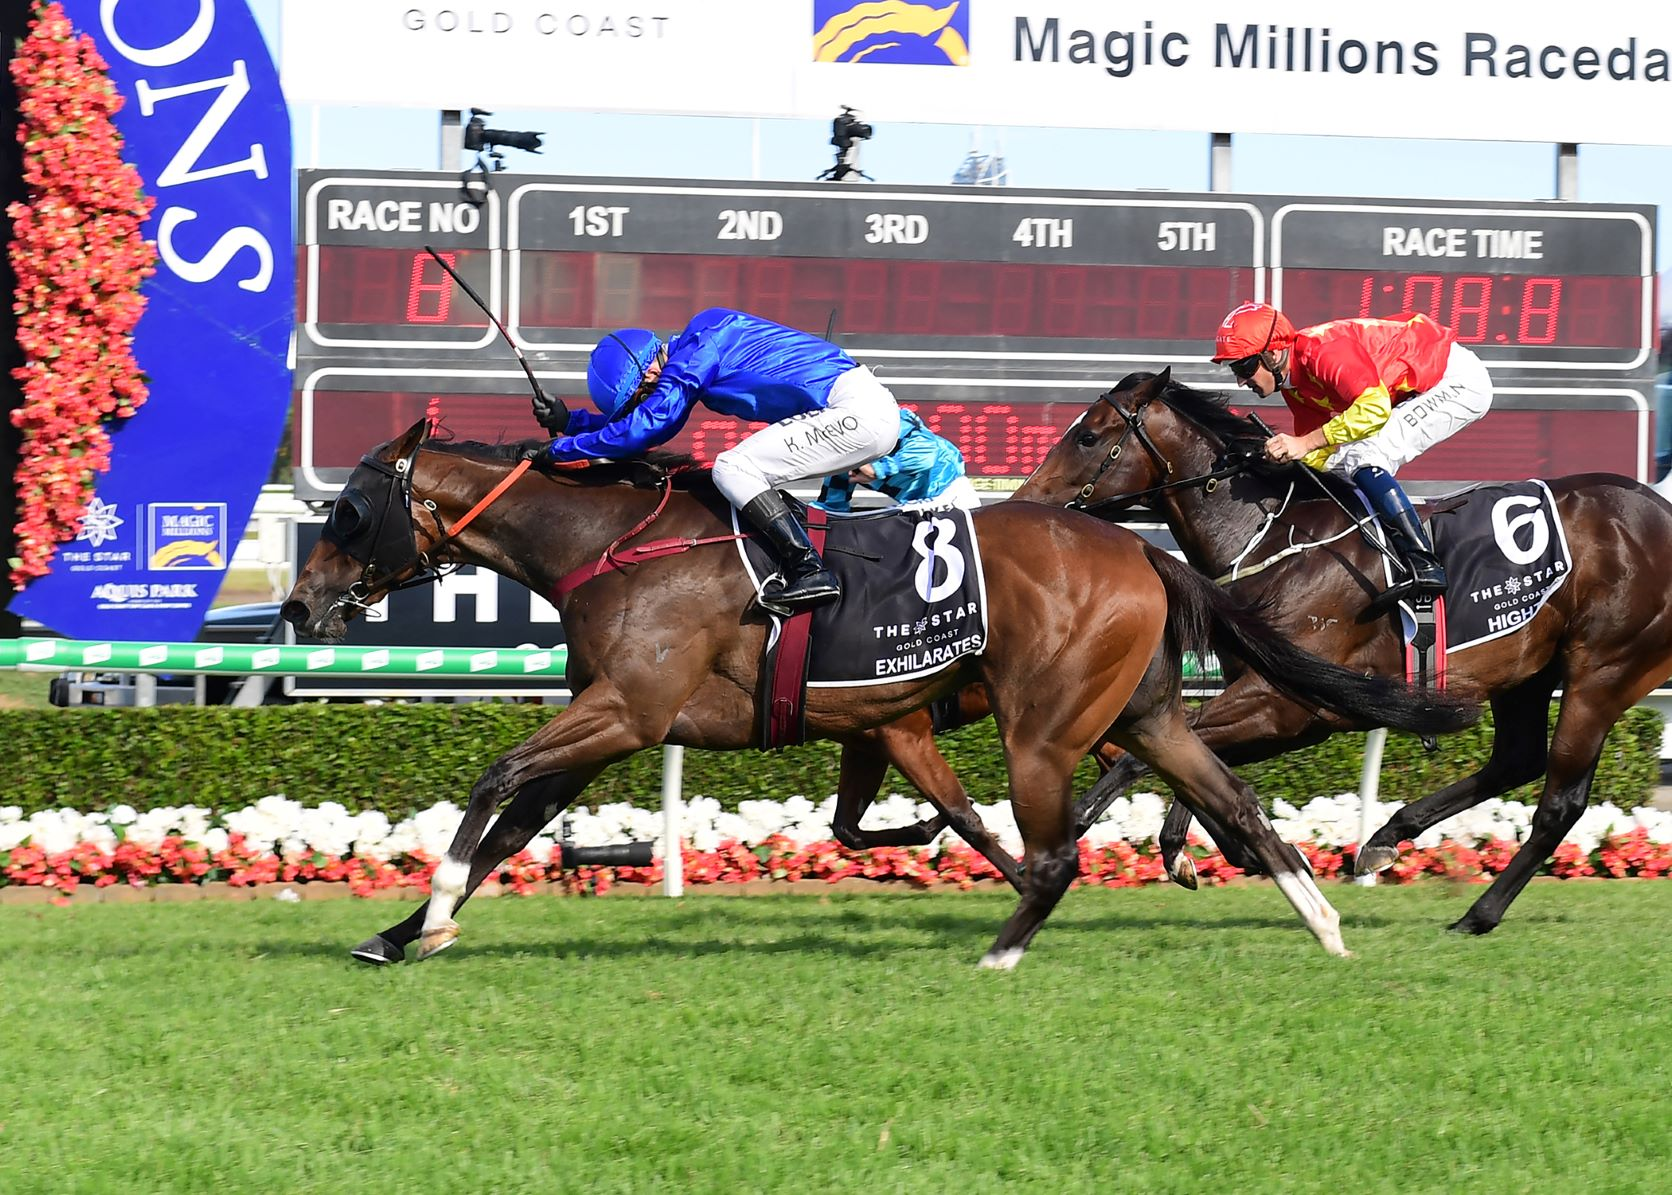 Exhilarates charges home to win the Magic Millions 2yo Classic